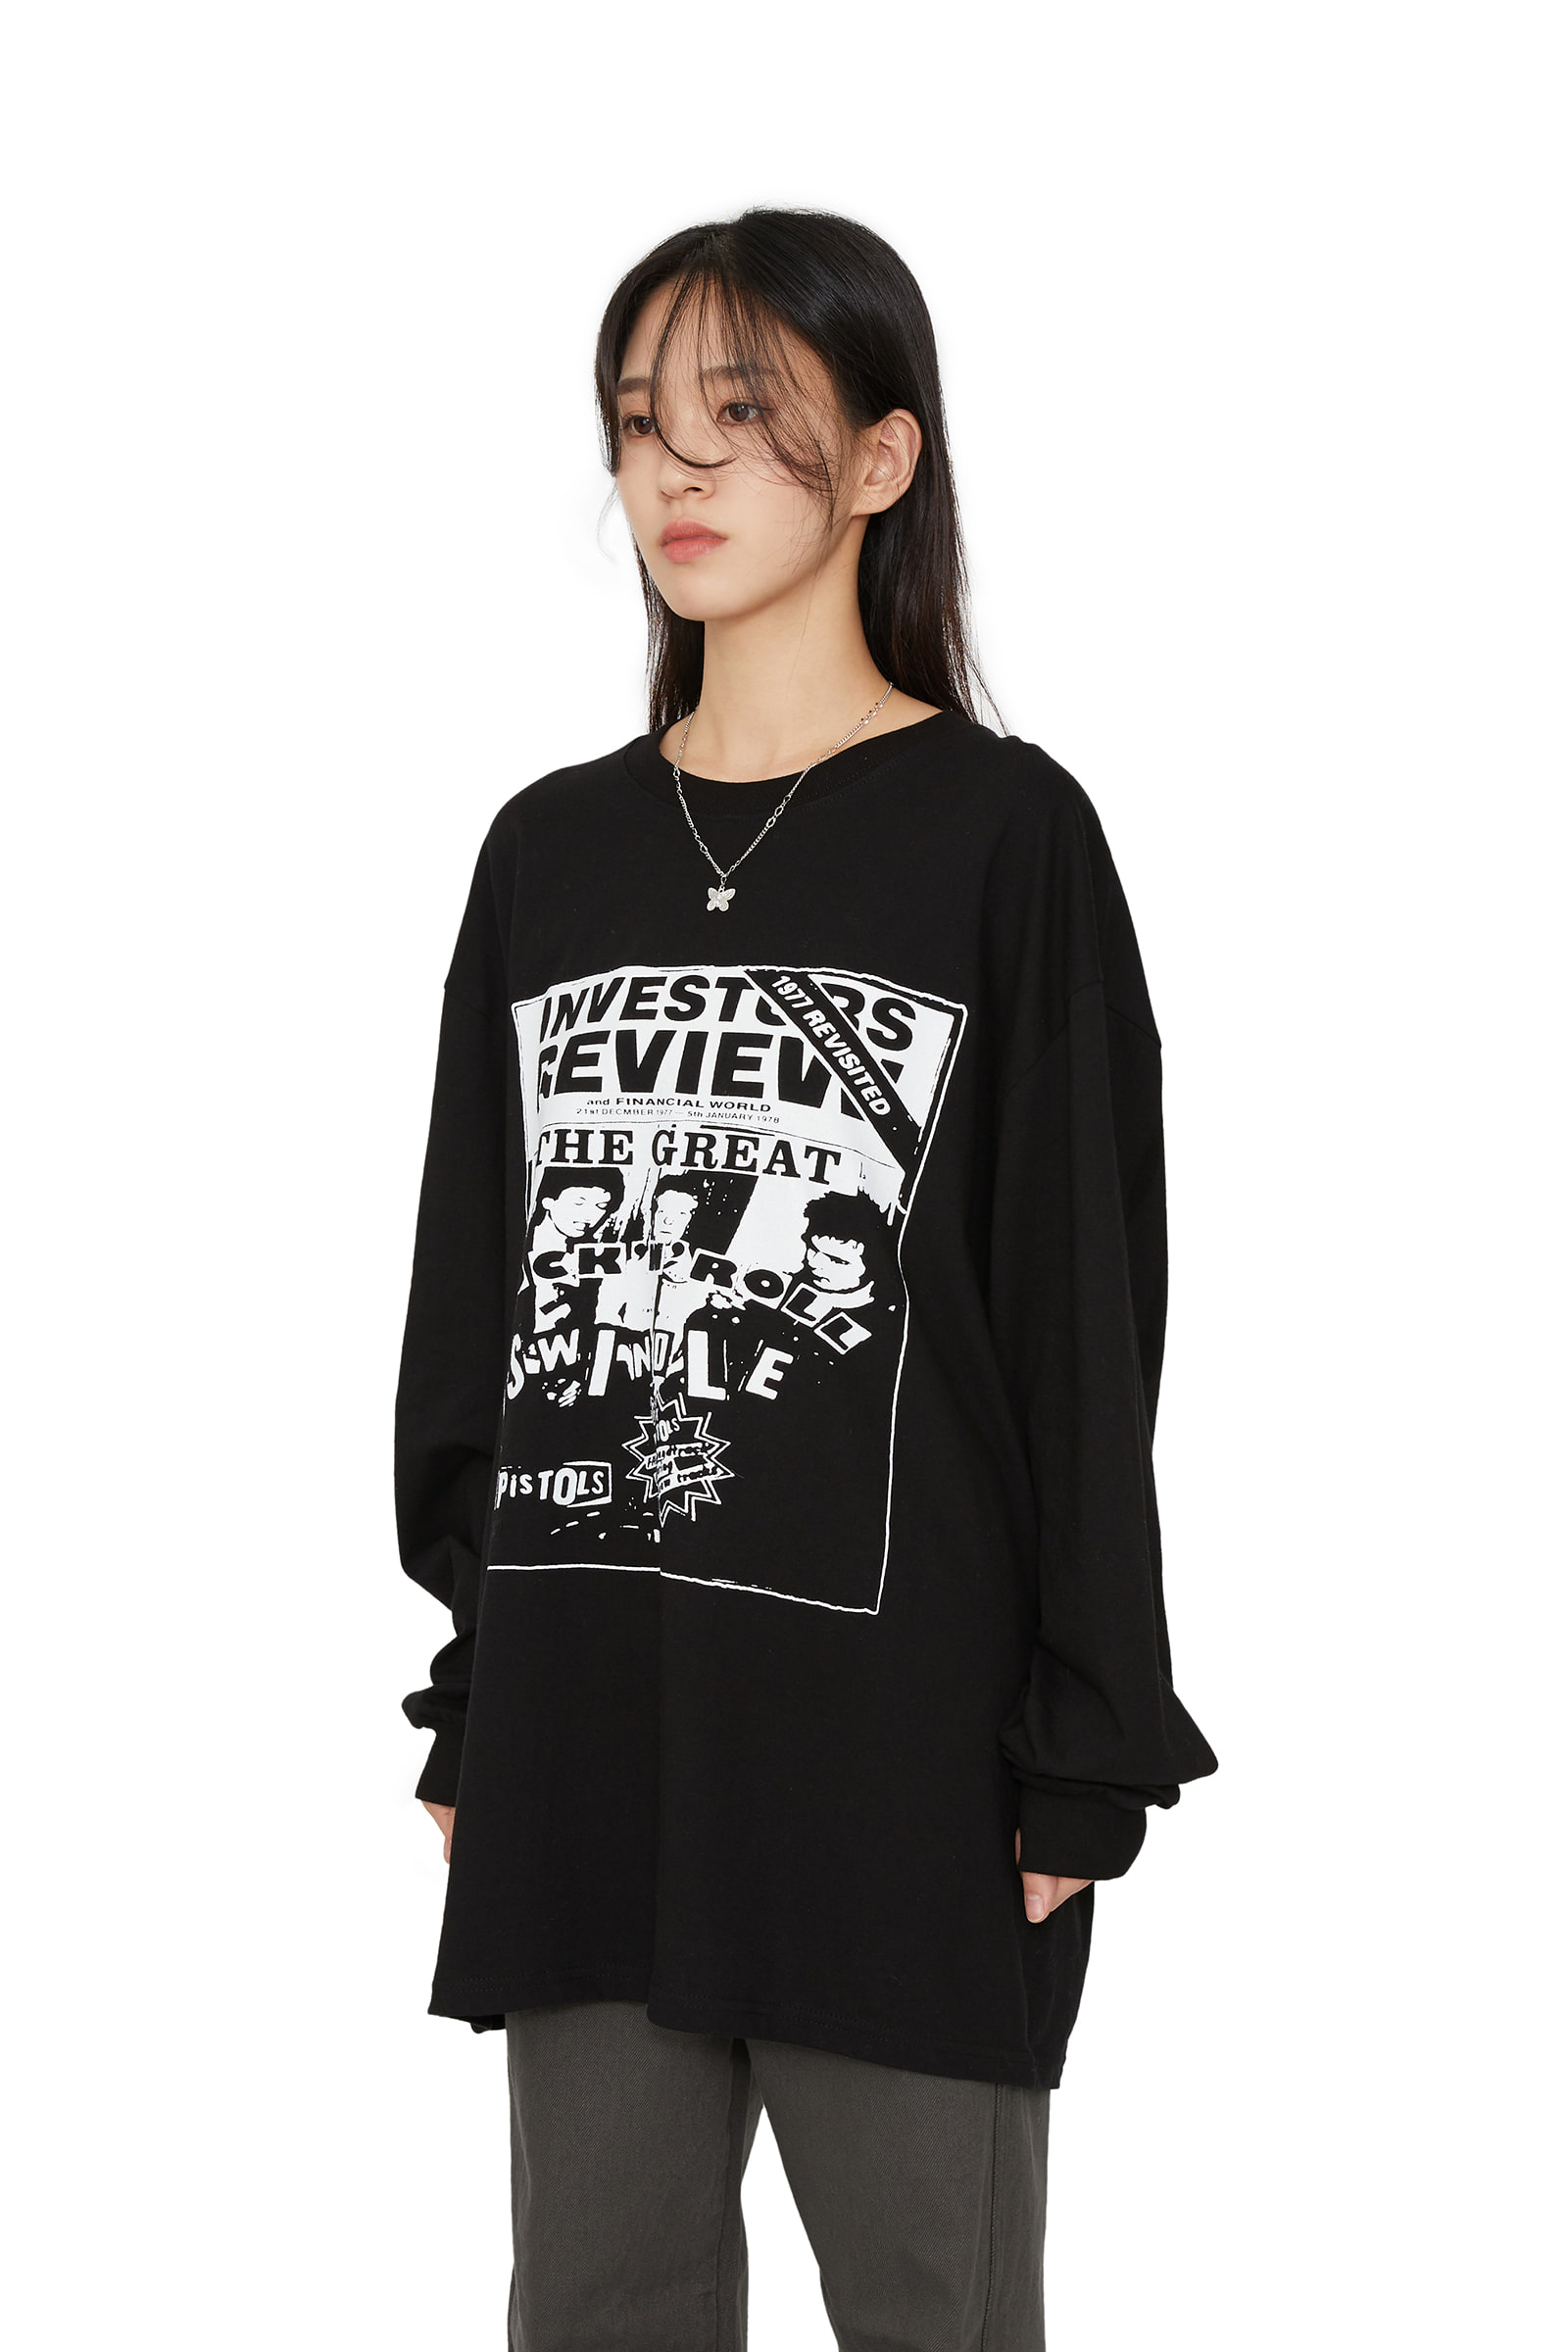 Pistols over long sleeve T-shirt